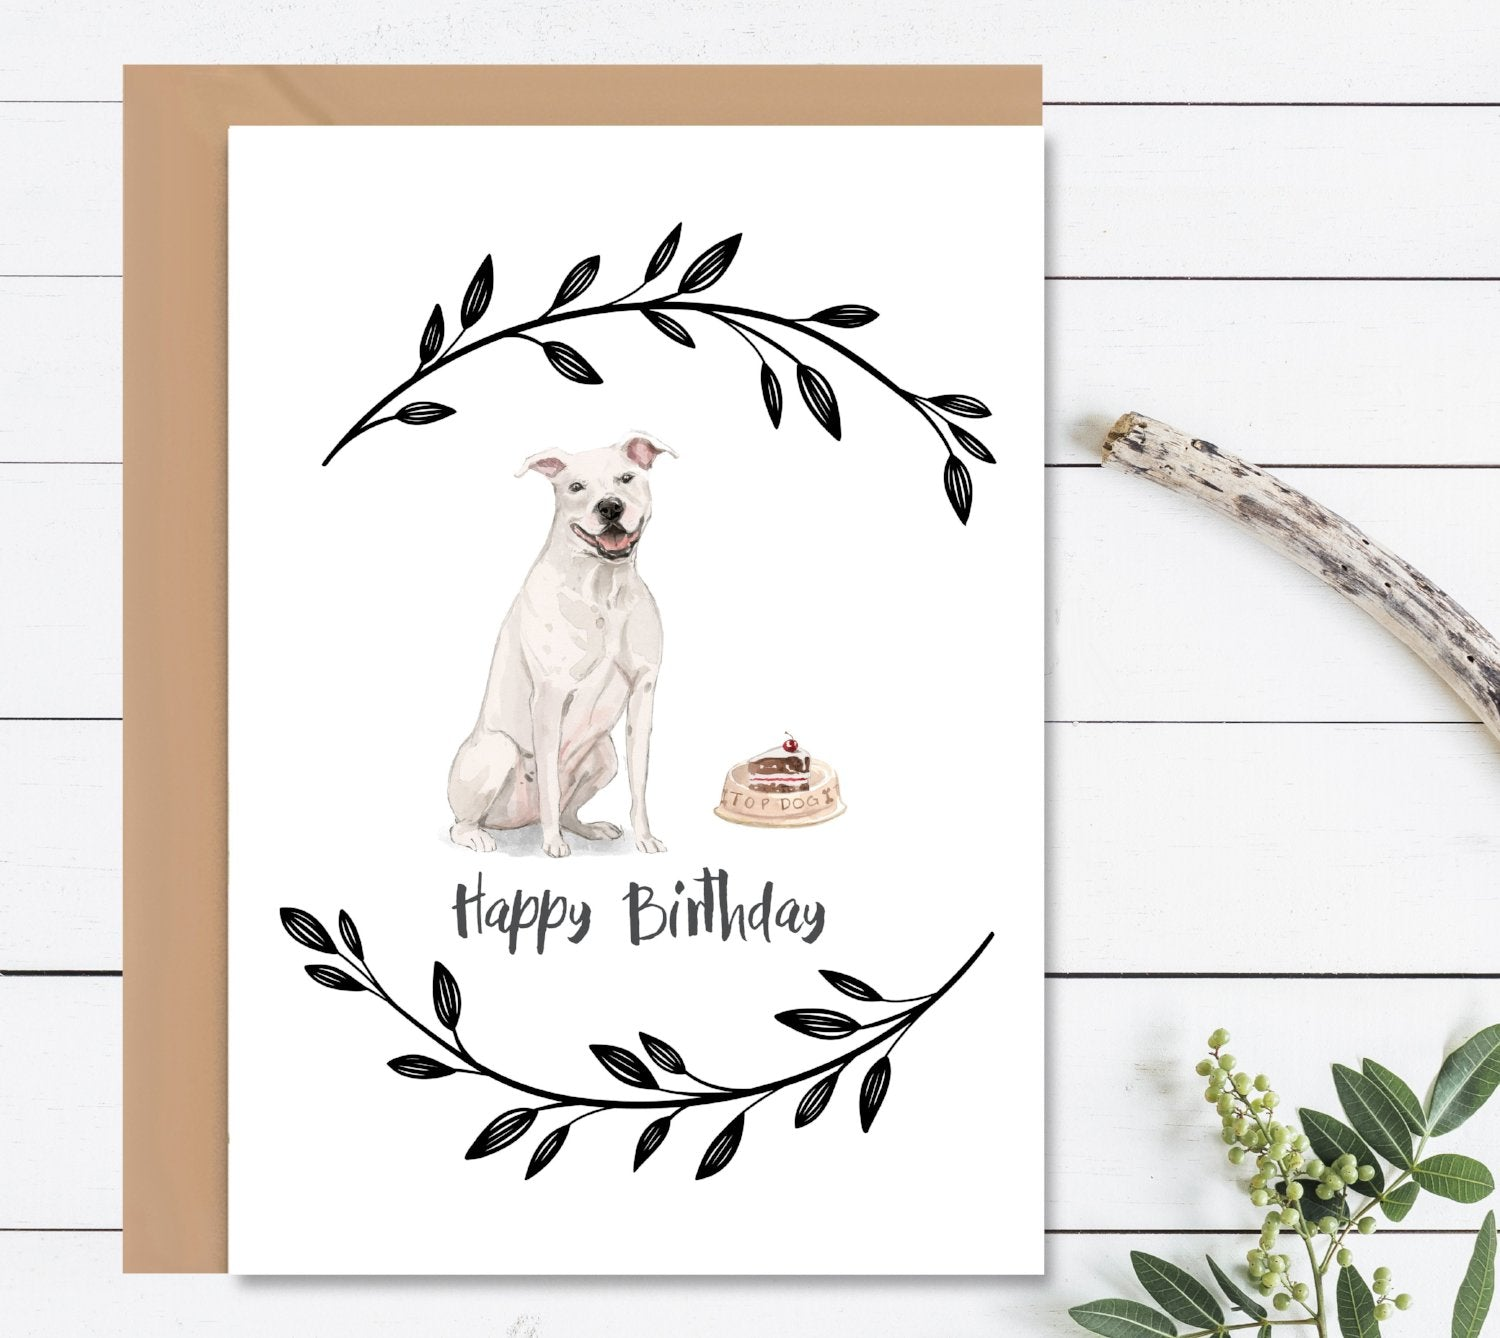 American Staffordshire Terrier Dog Birthday Card-Greeting Cards-Mode Prints